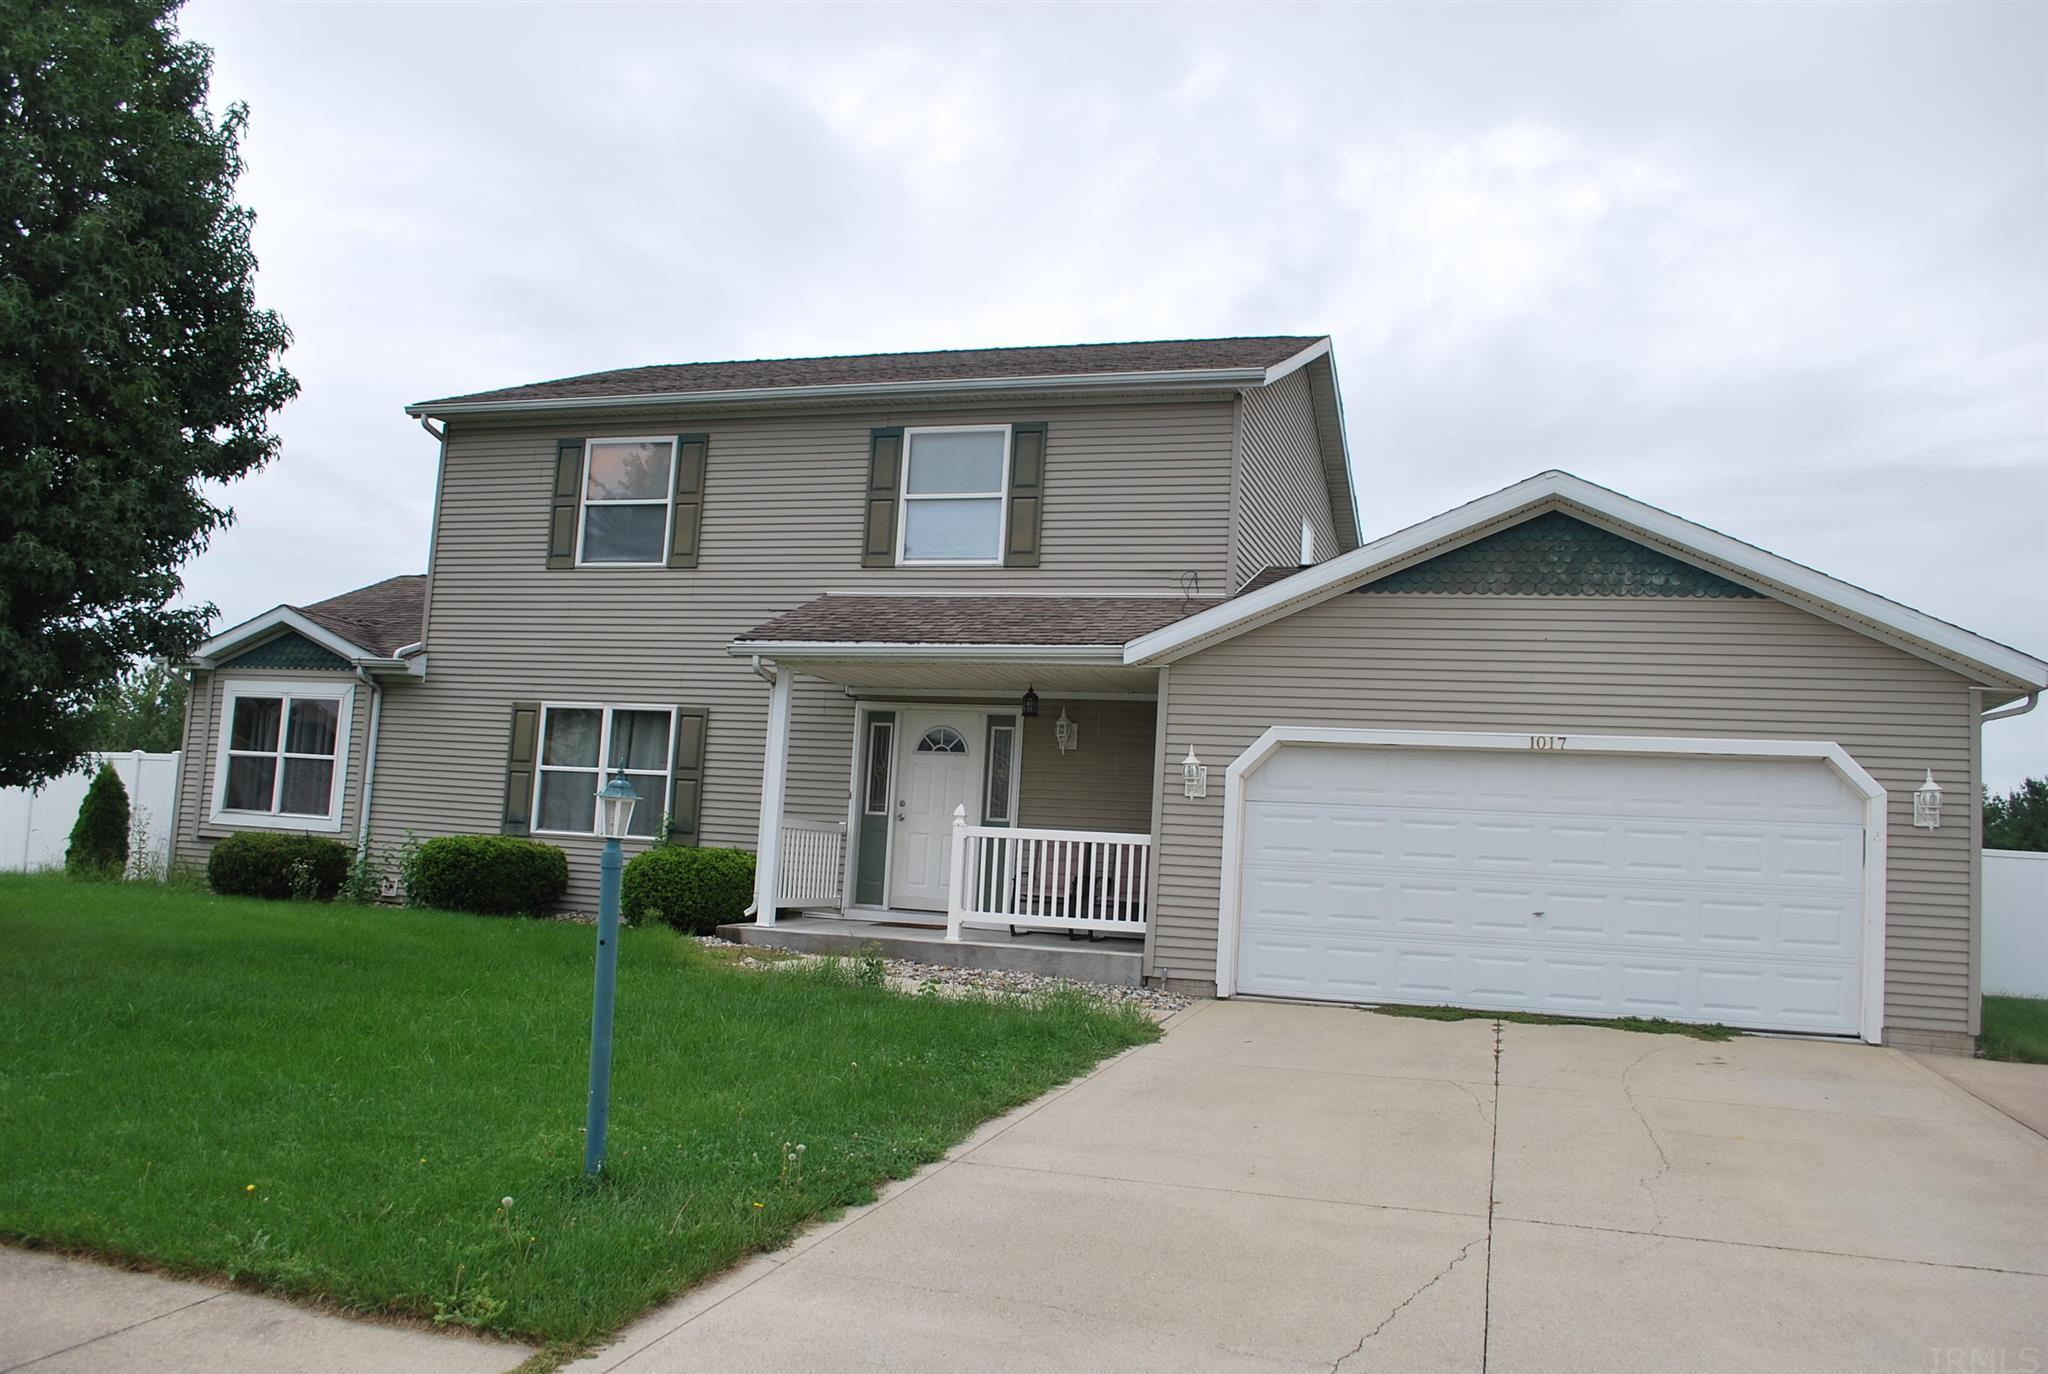 1017 Harvest Goshen, IN 46526